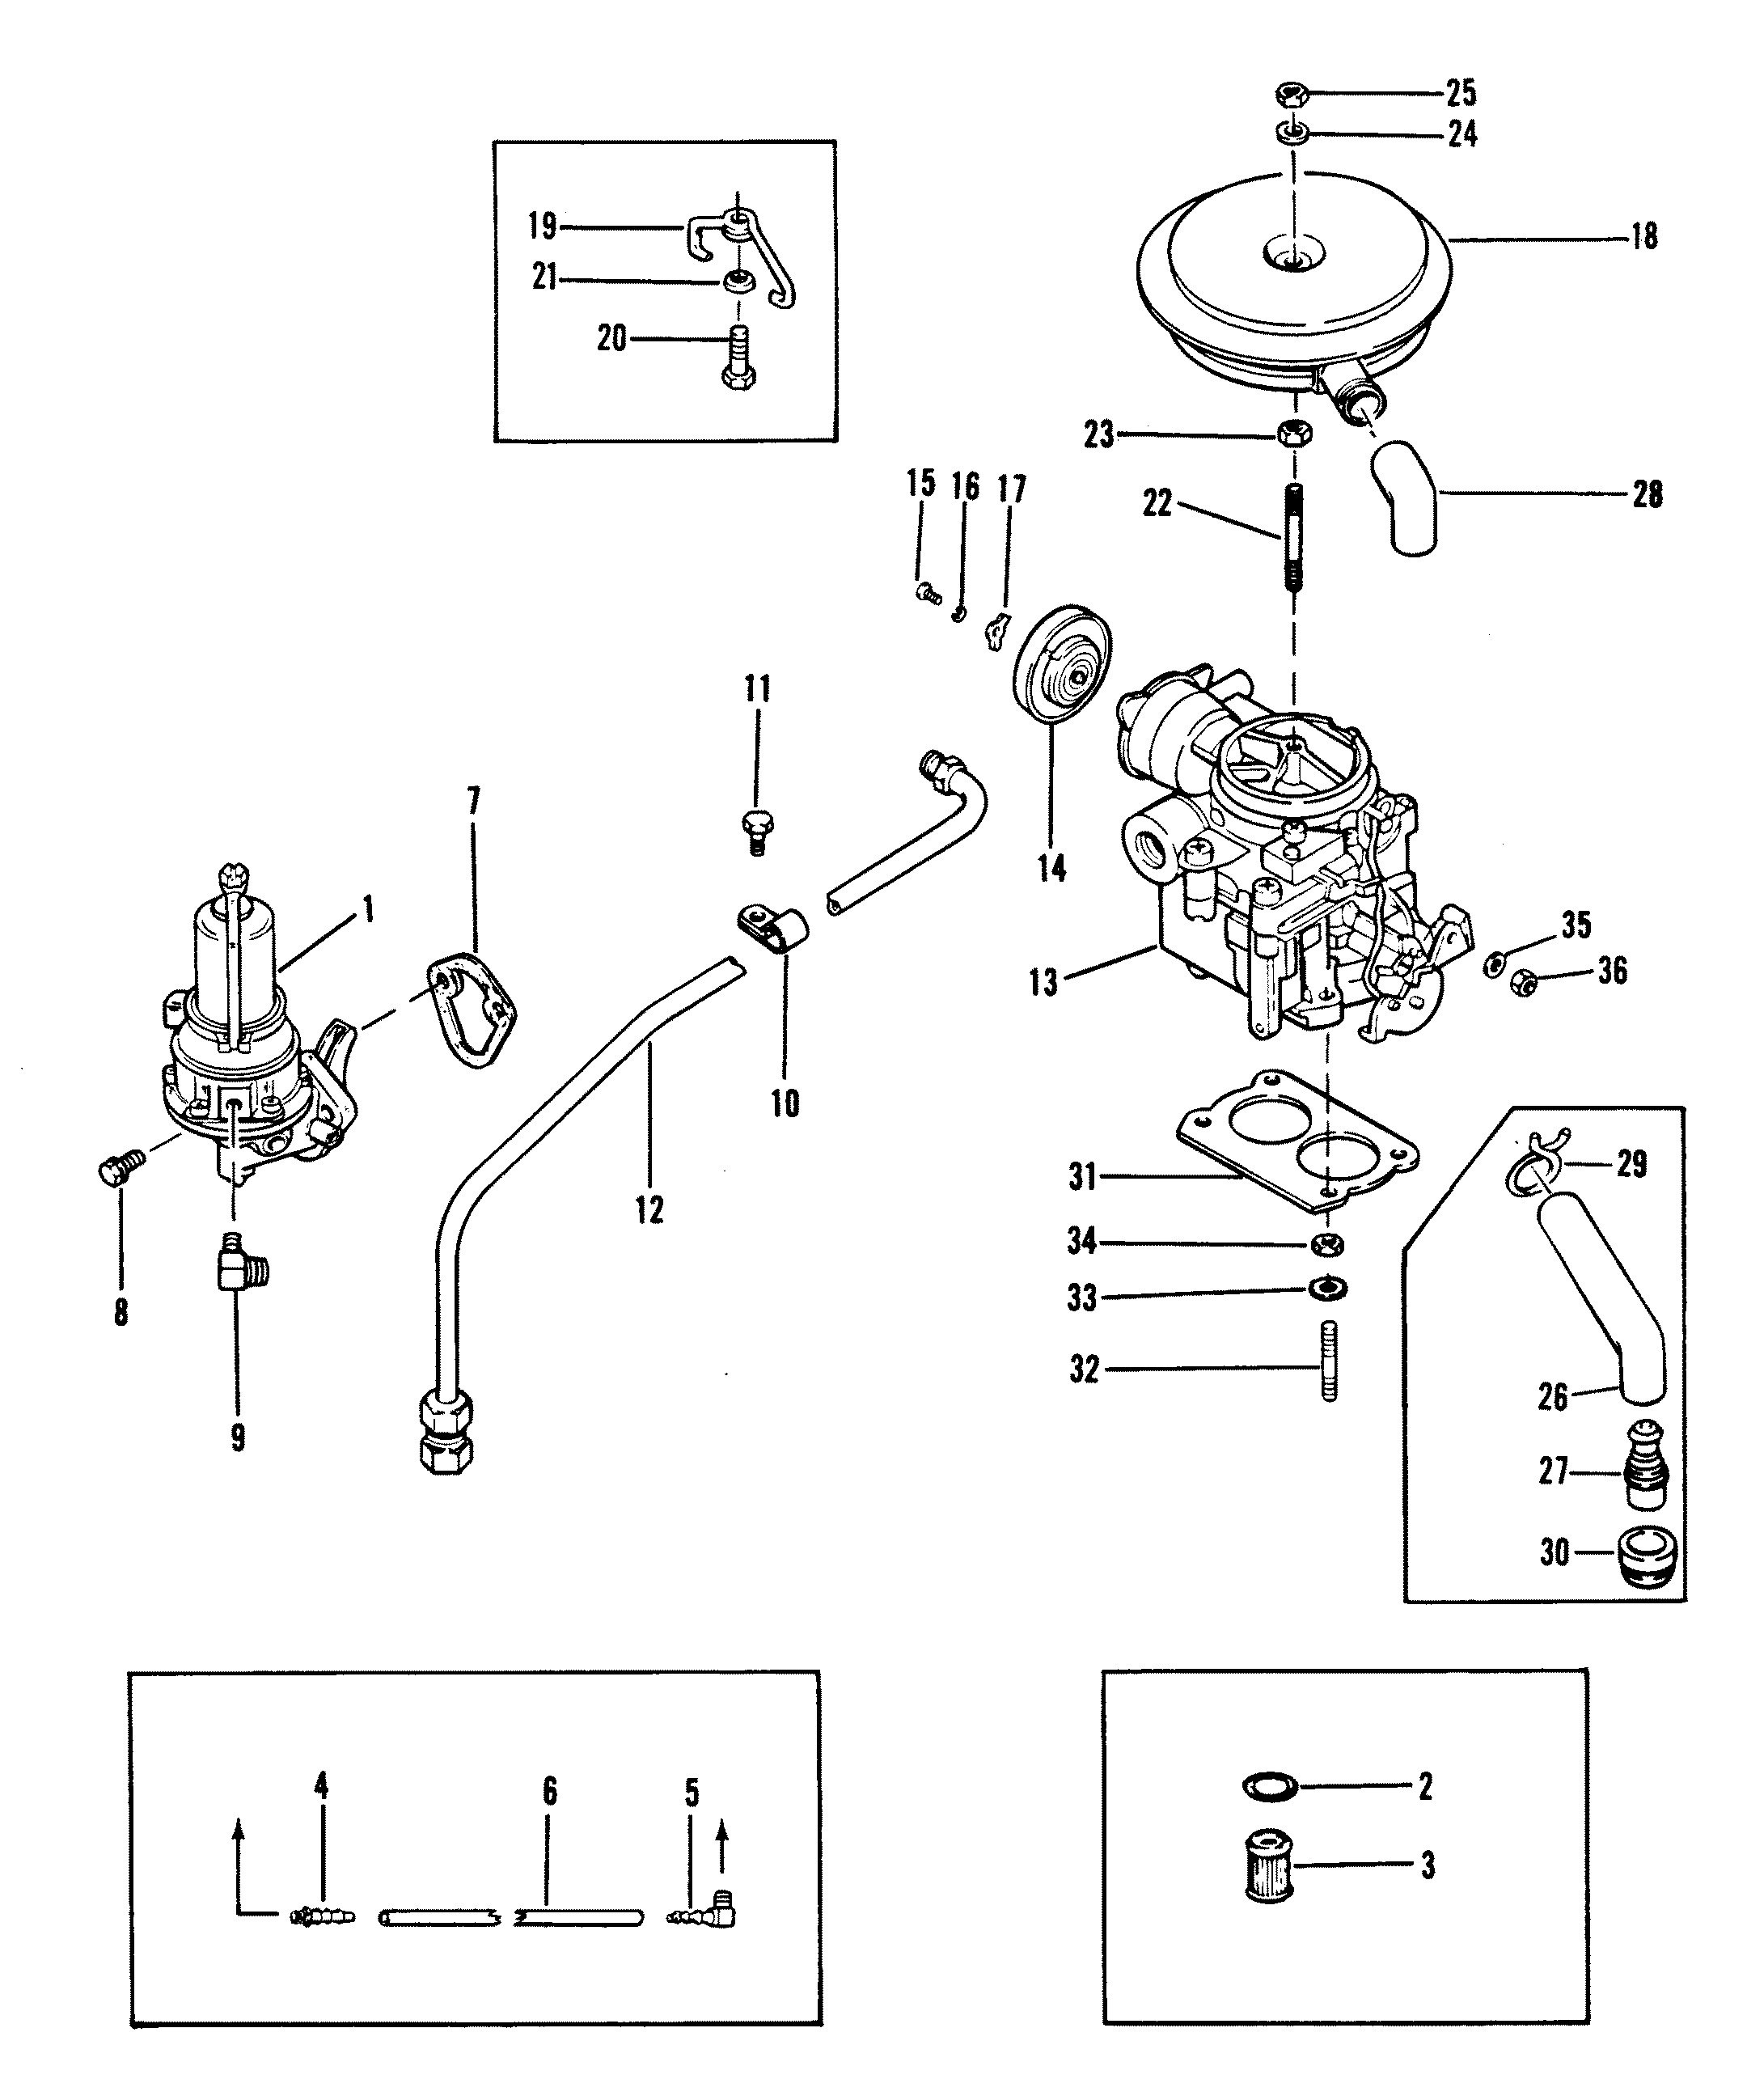 4 3 Mercruiser Starter Diagram